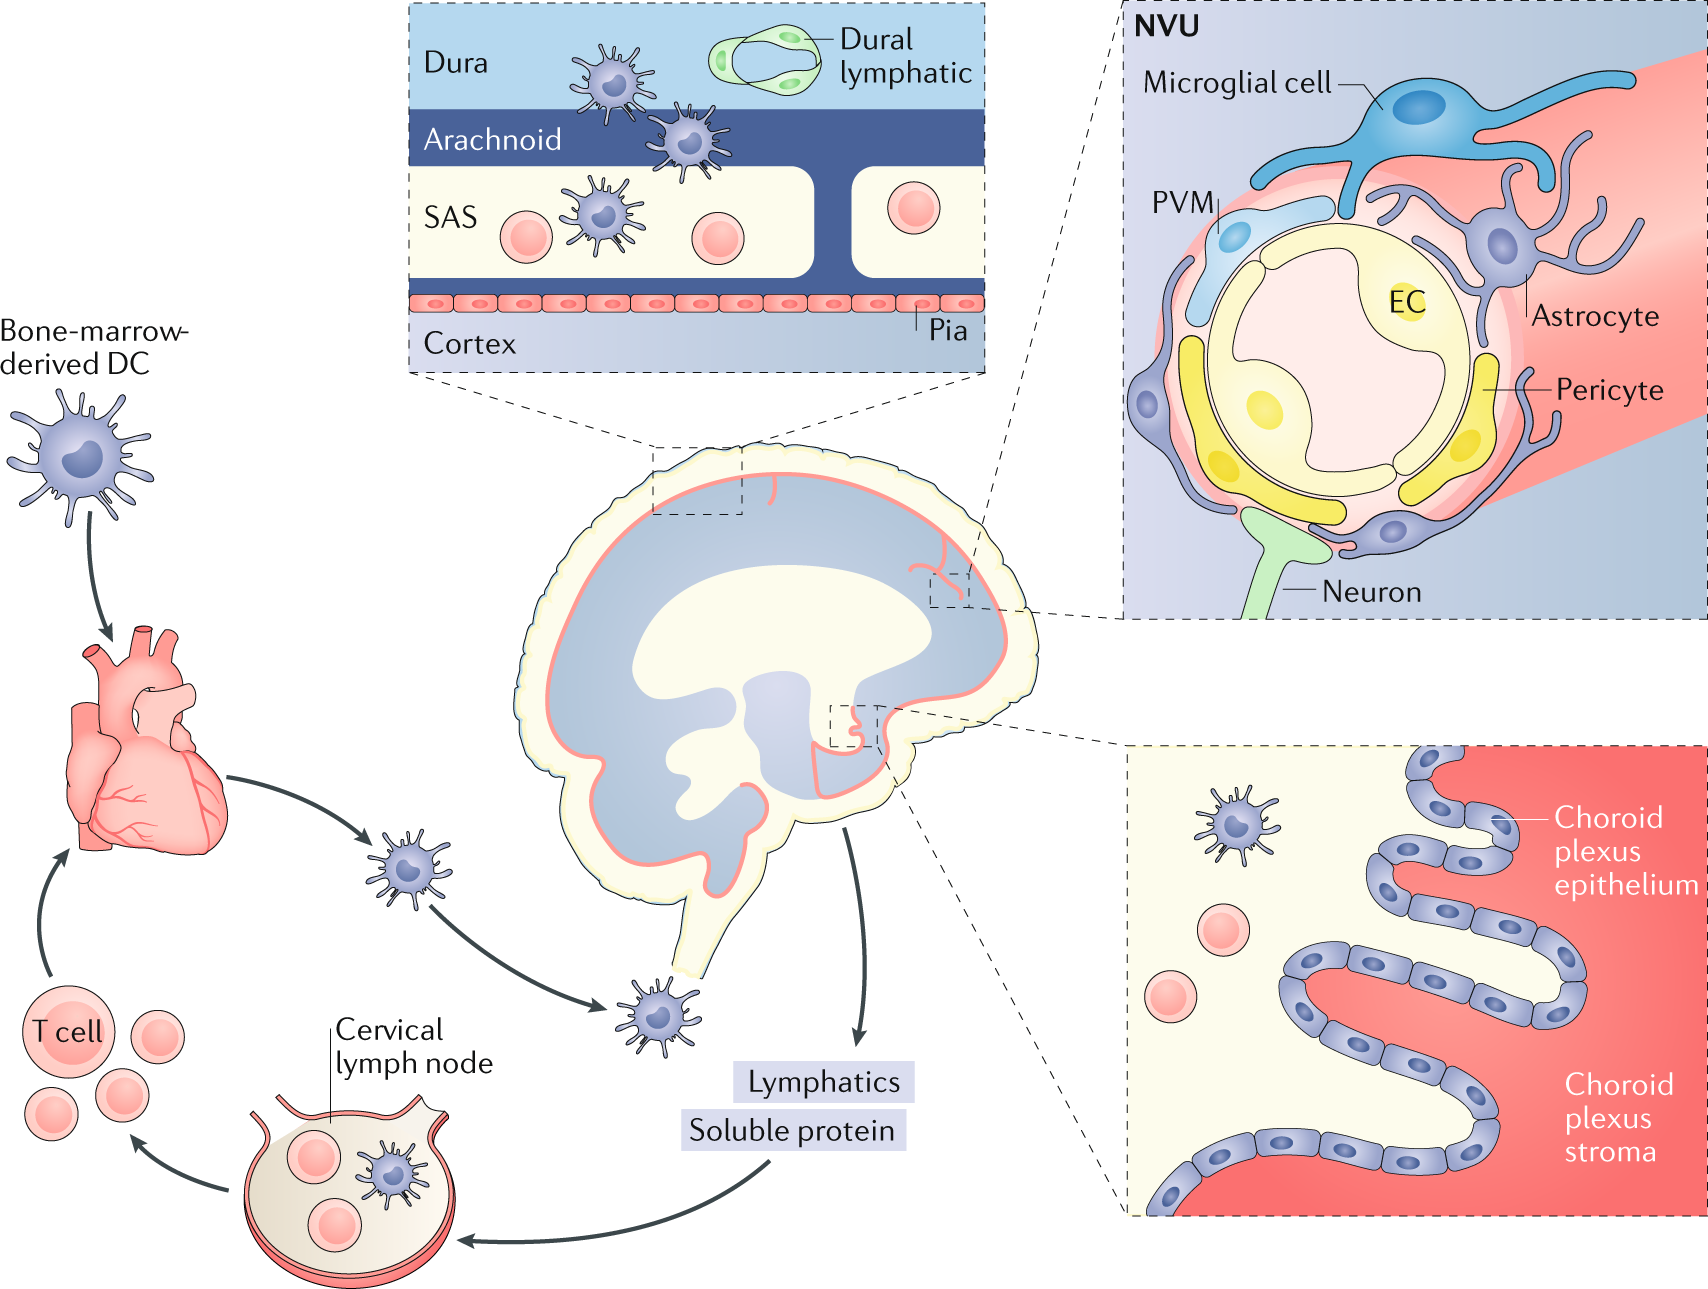 CNS infection and immune privilege | Nature Reviews Neuroscience